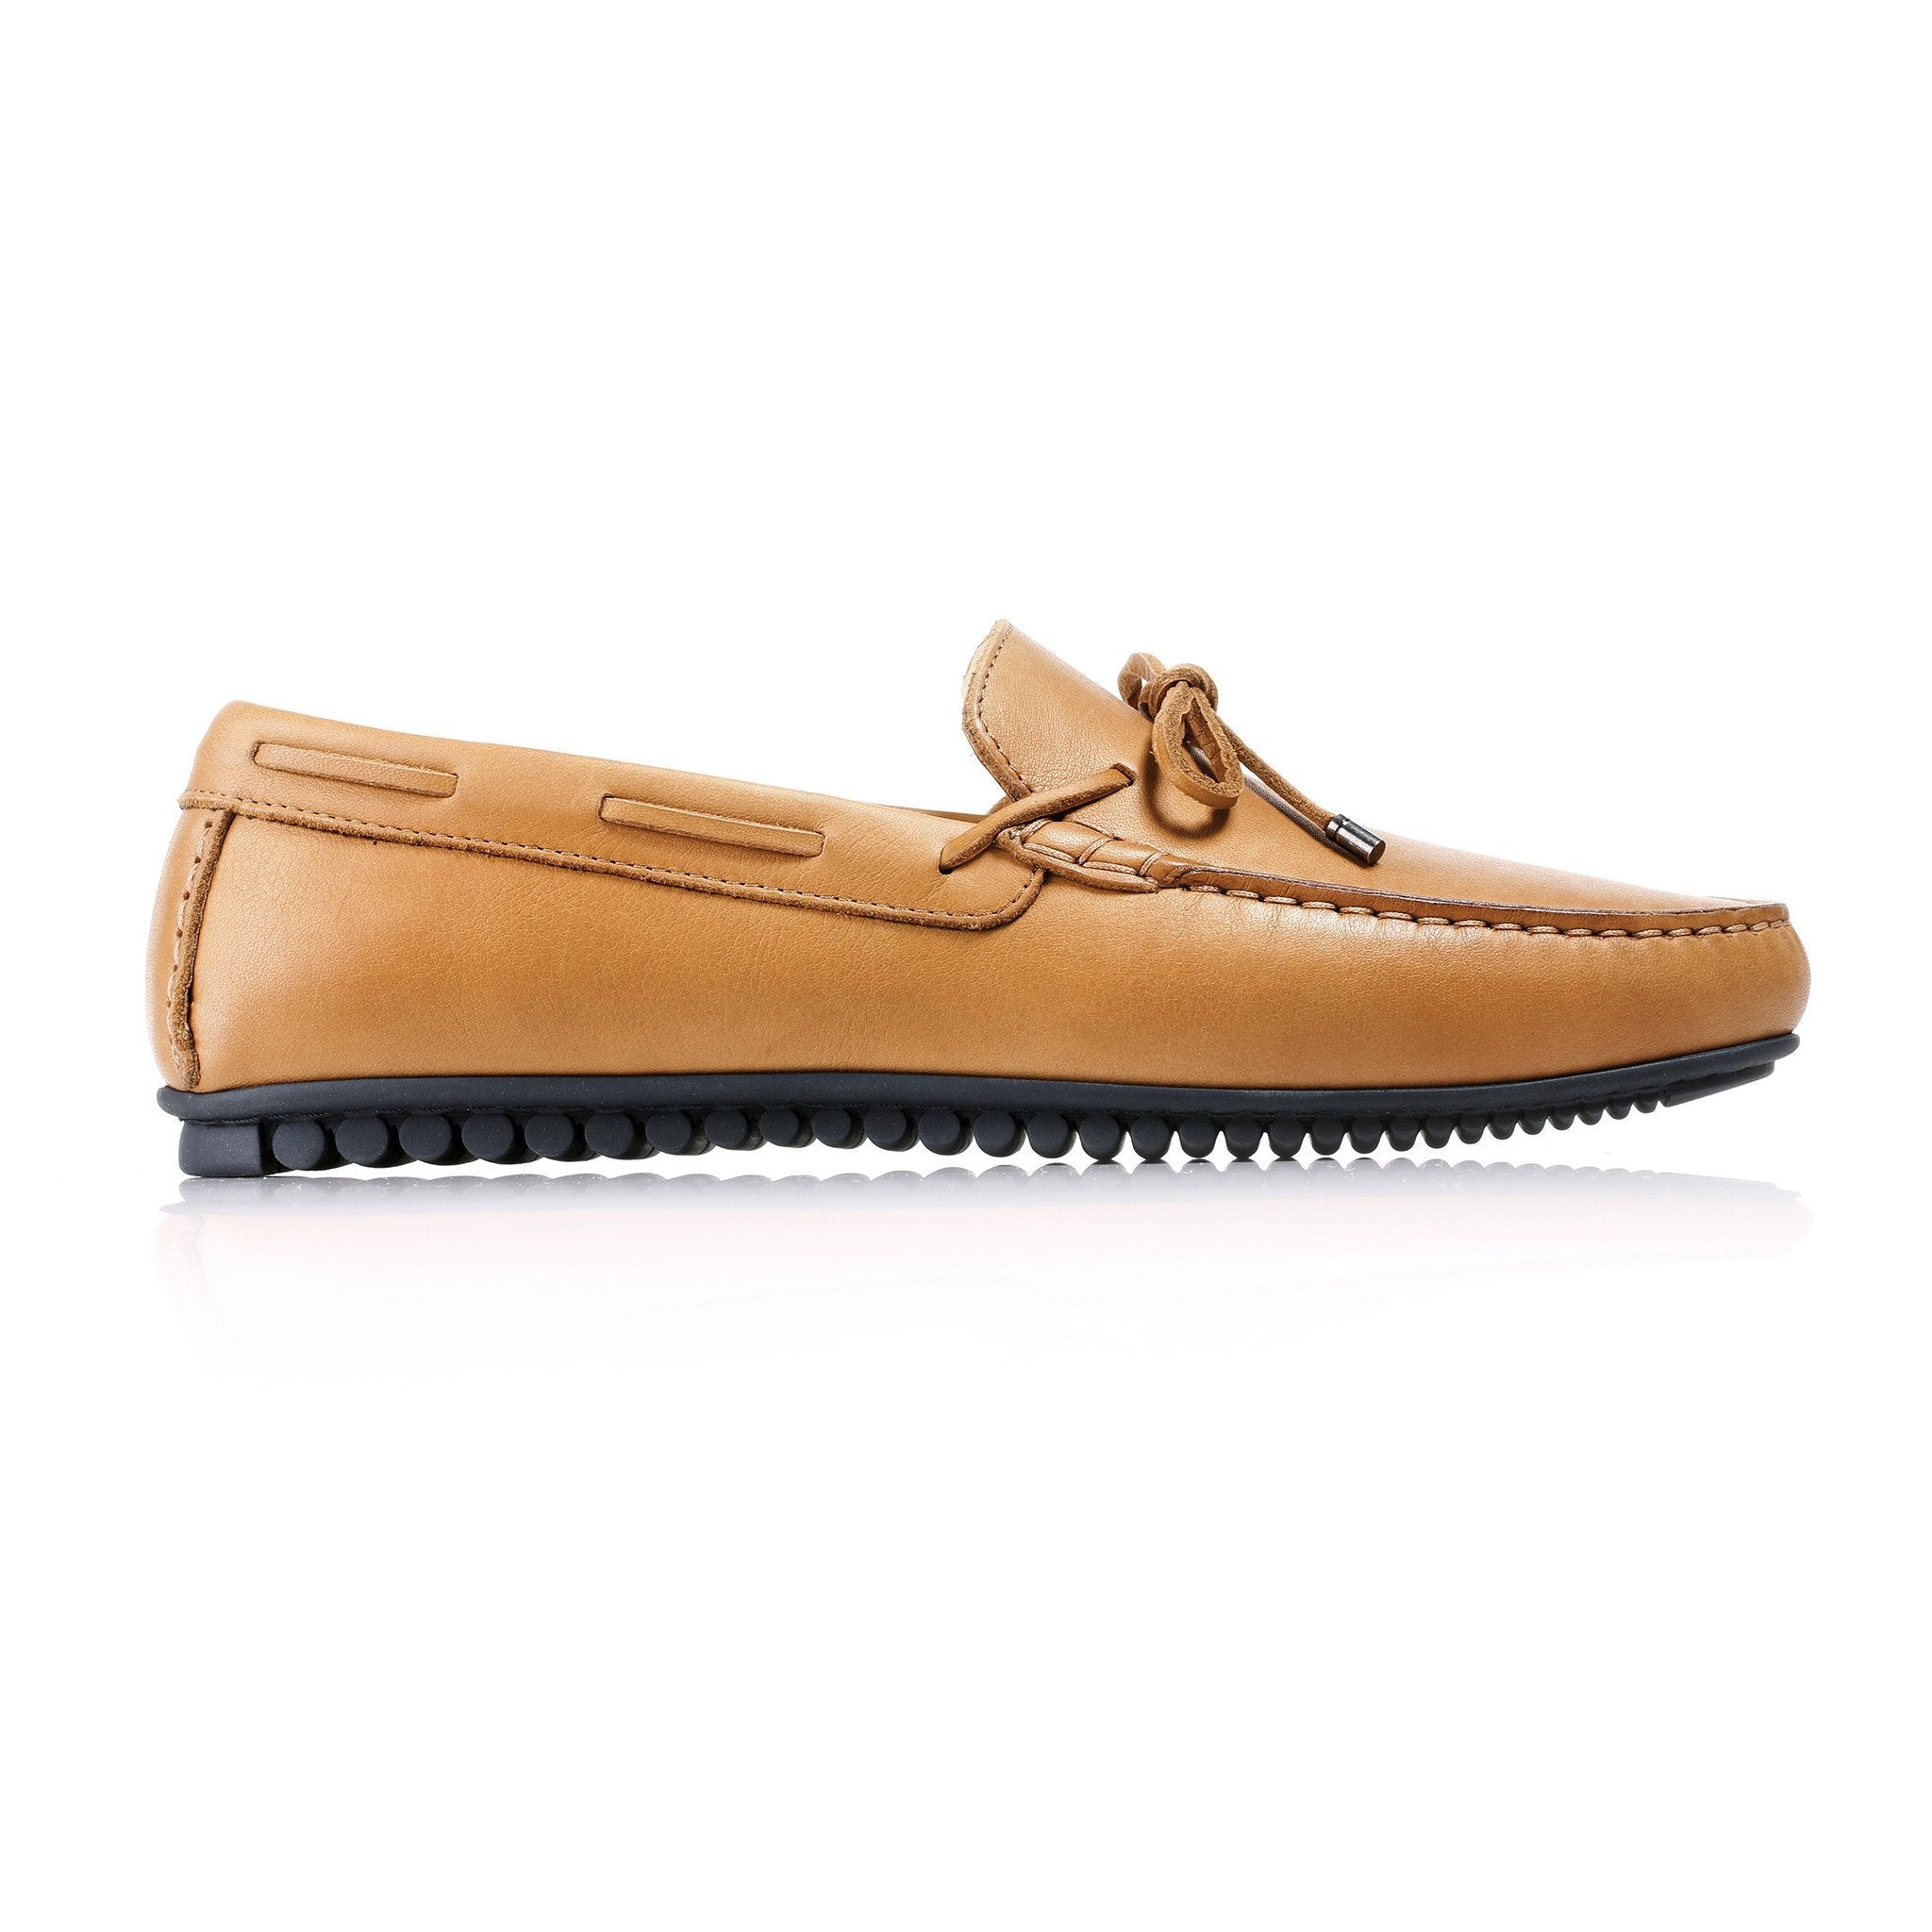 2017 Men's Tan Driver Mocassin